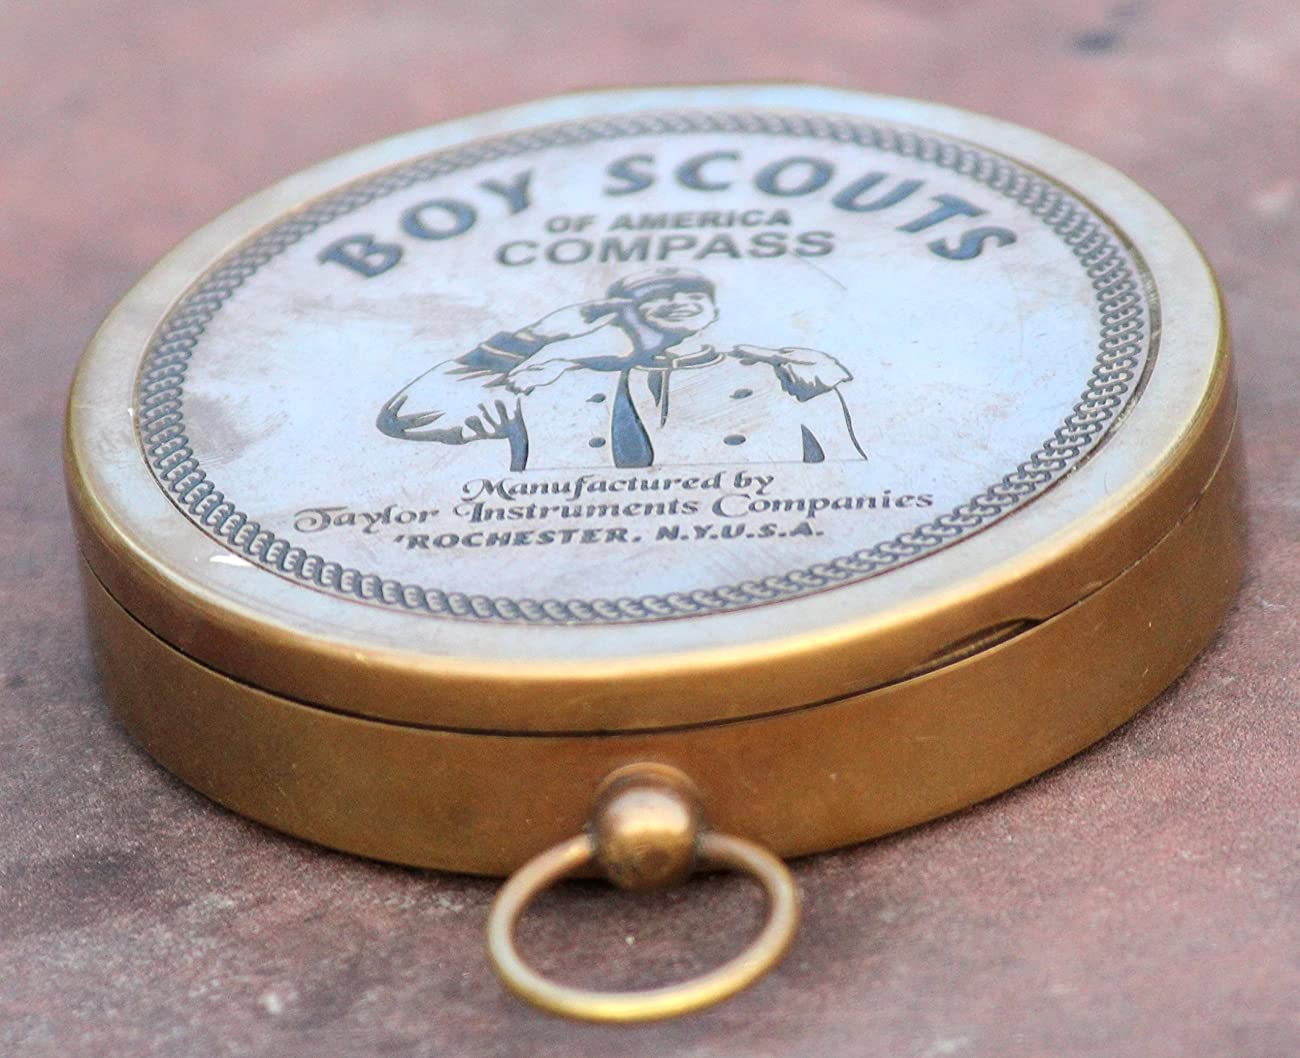 American Boy Scout Compass Antique Vintage Brass Compass 2